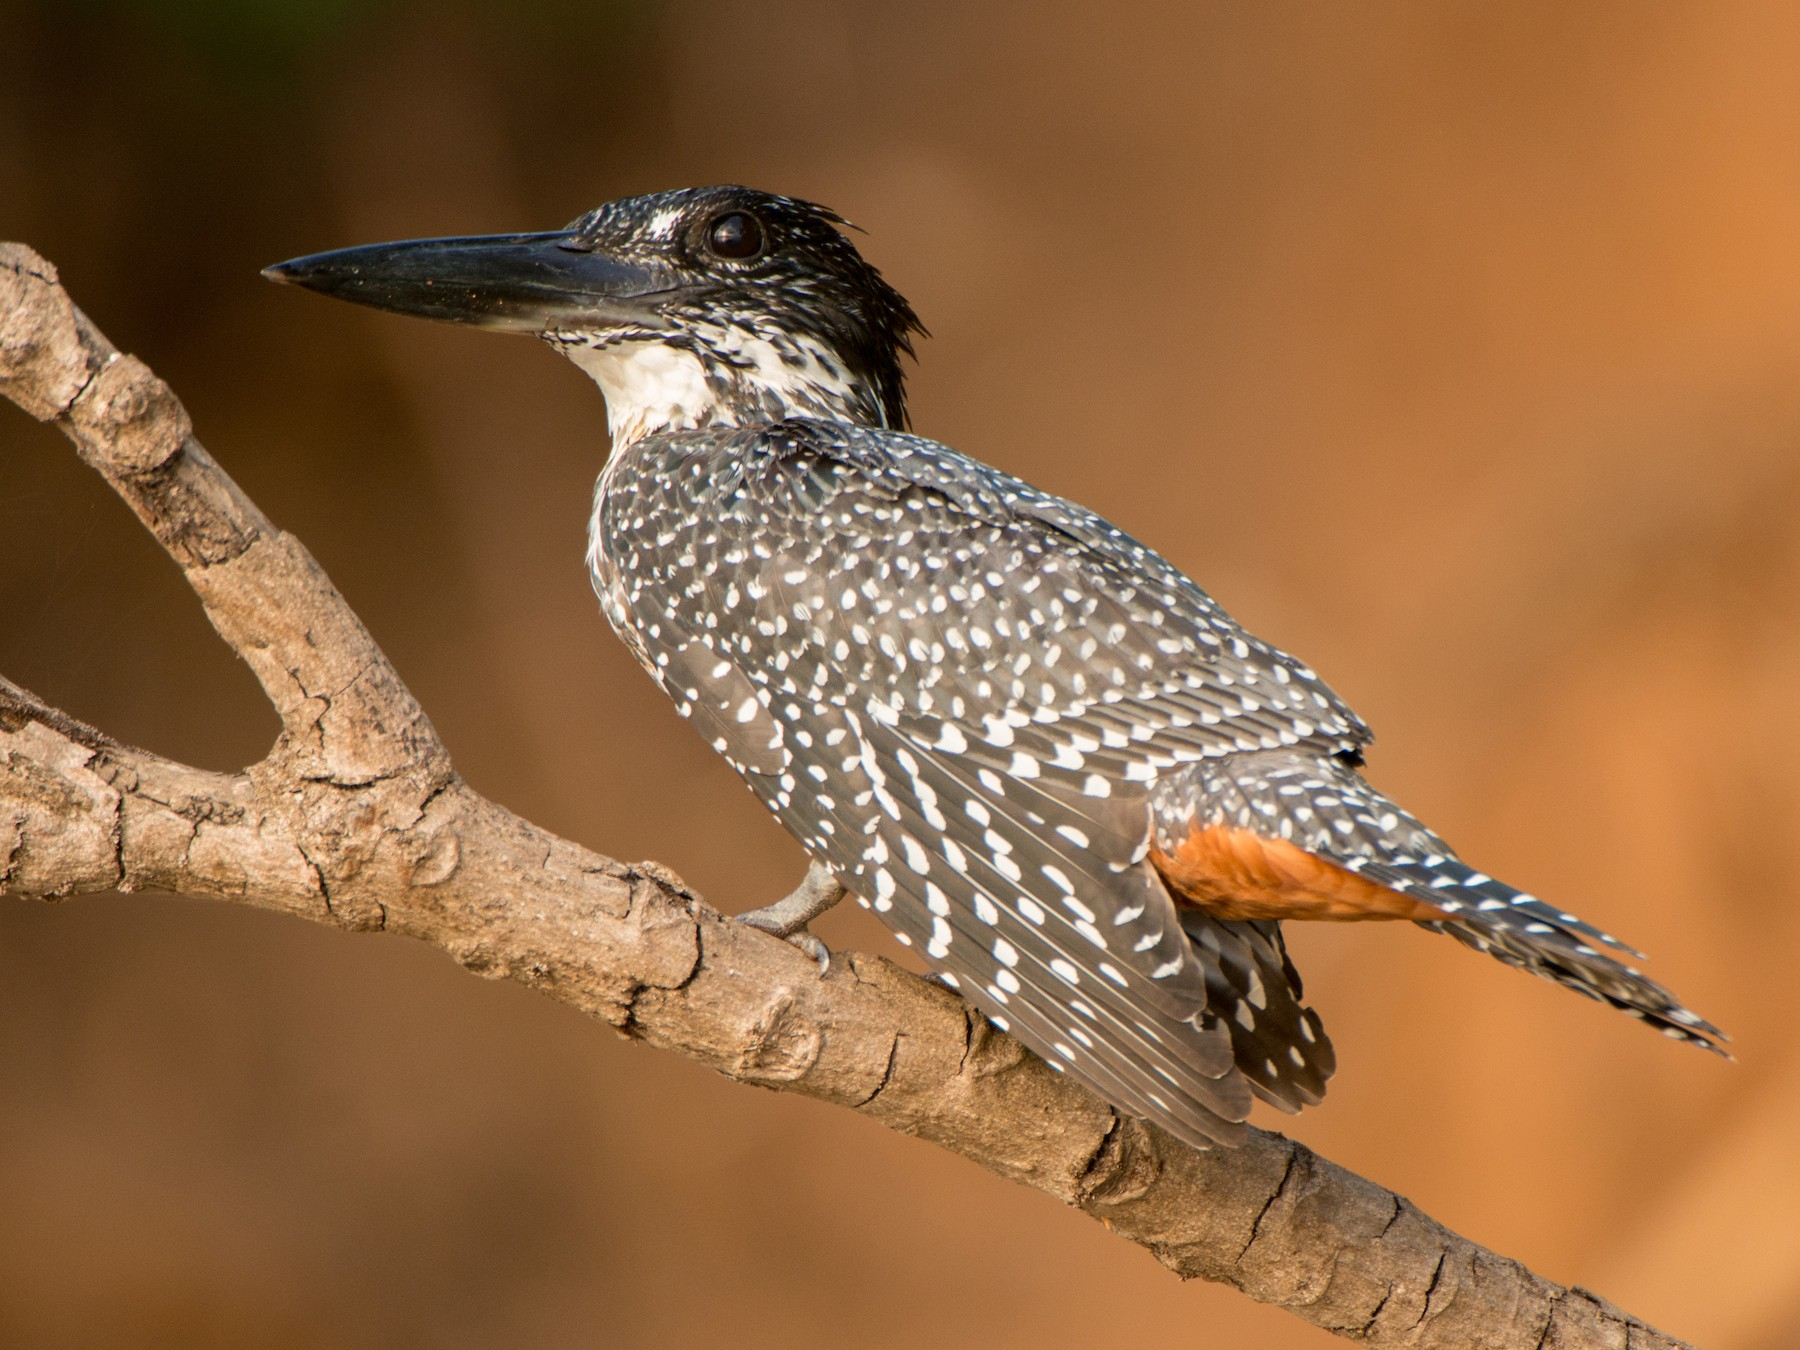 Giant Kingfisher - Eric van Poppel